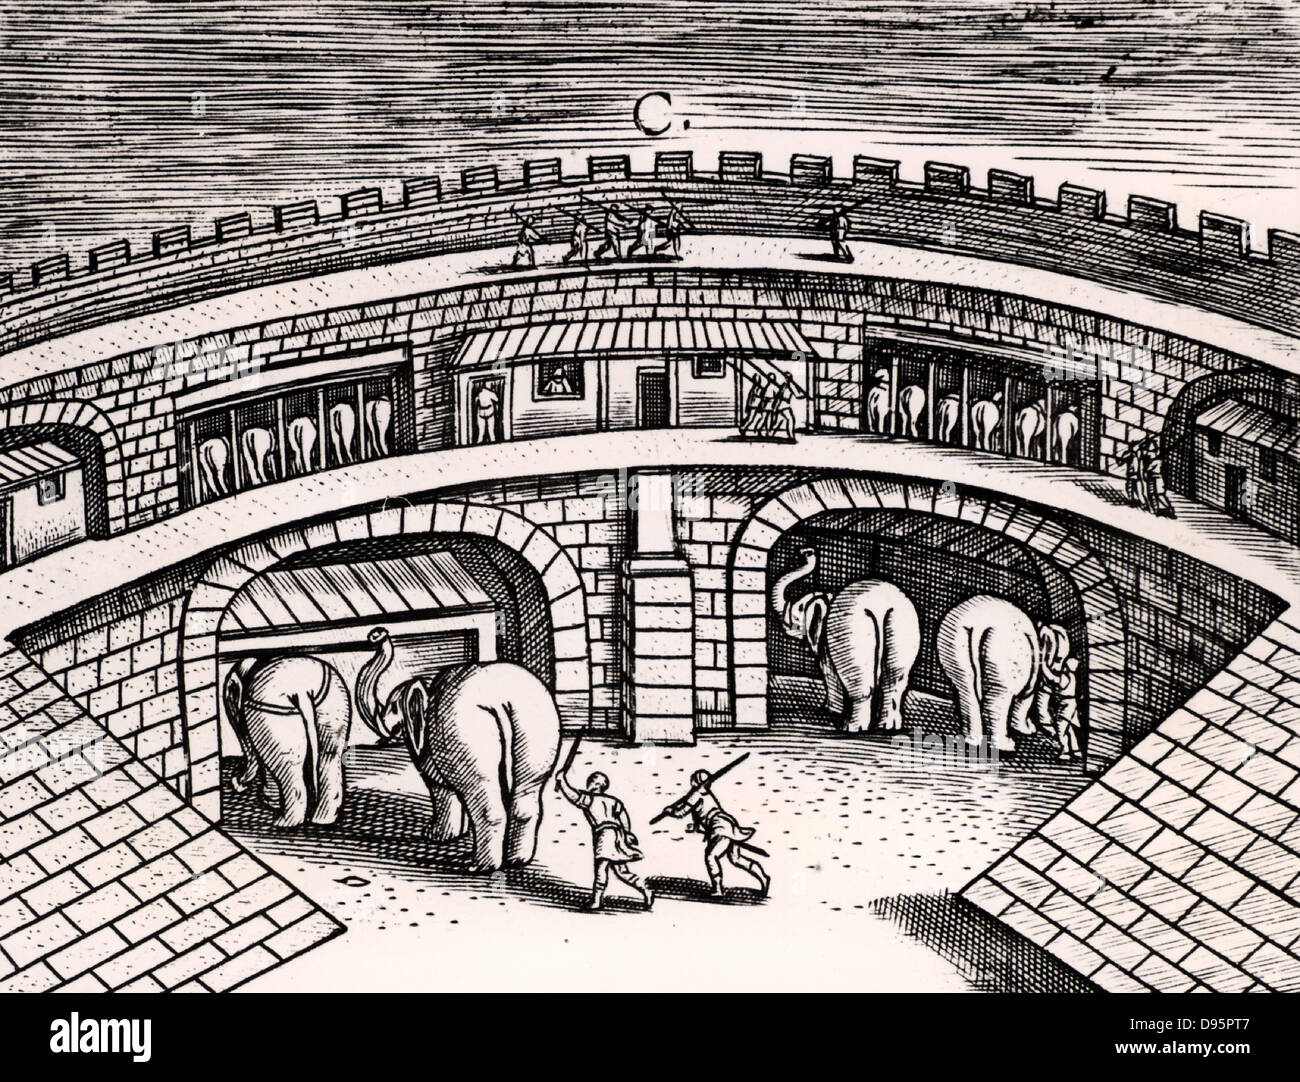 Roman army stables with elephants at ground level, with horses on the upper level.   From 'Poliorceticon' by Justus Lipsius (Antwerp, 1605). Copperplate engraving. Stock Photo